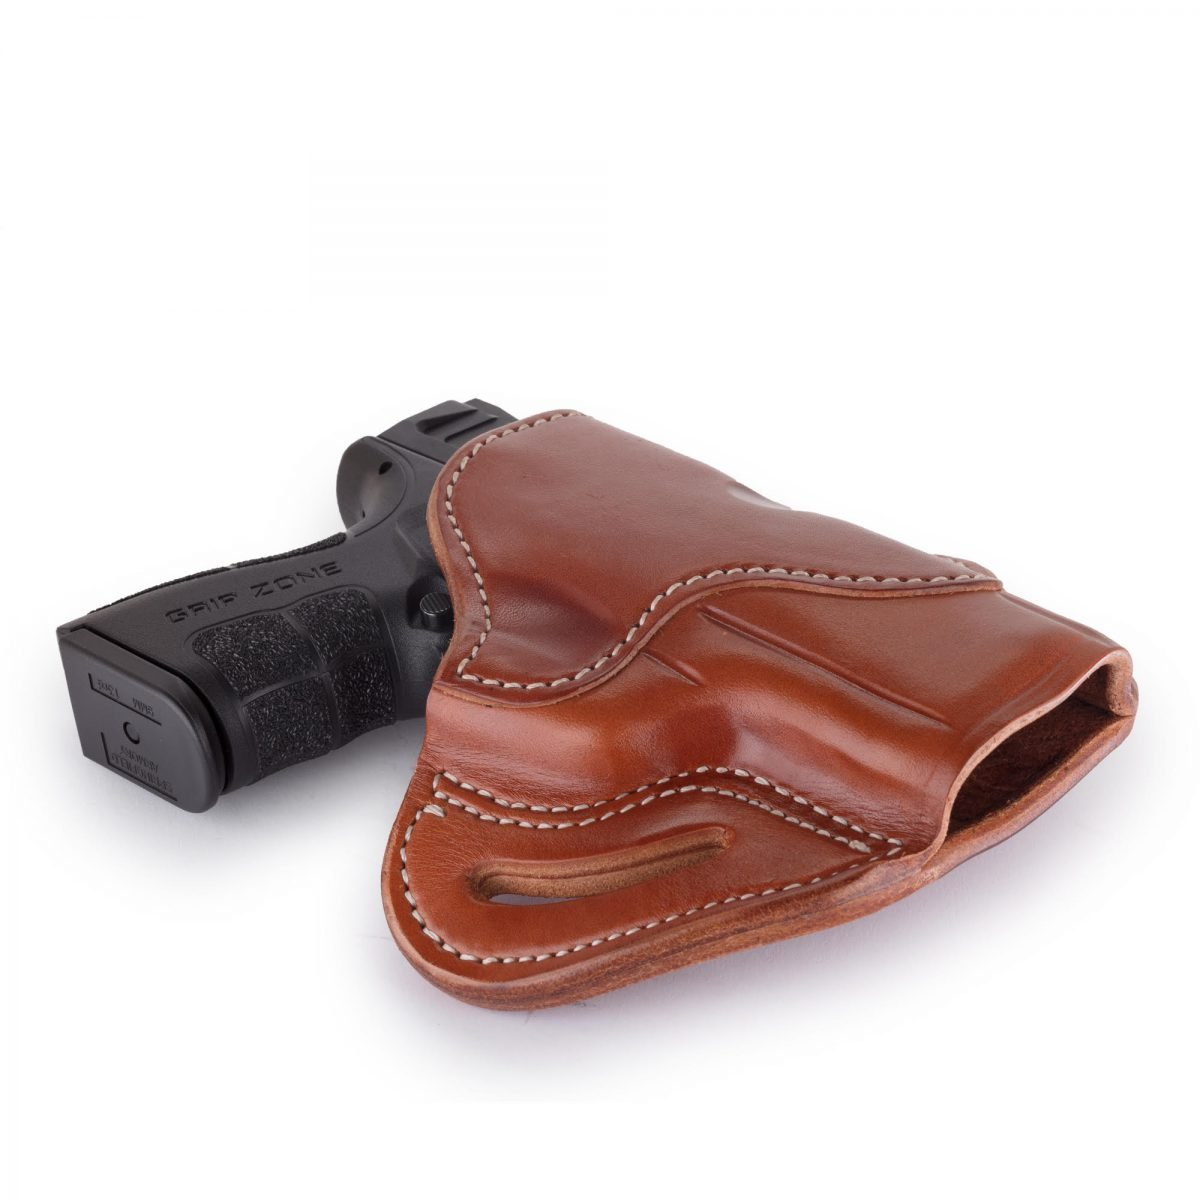 BH2 4S - Open Top Multi-Fit Holster 2 4S